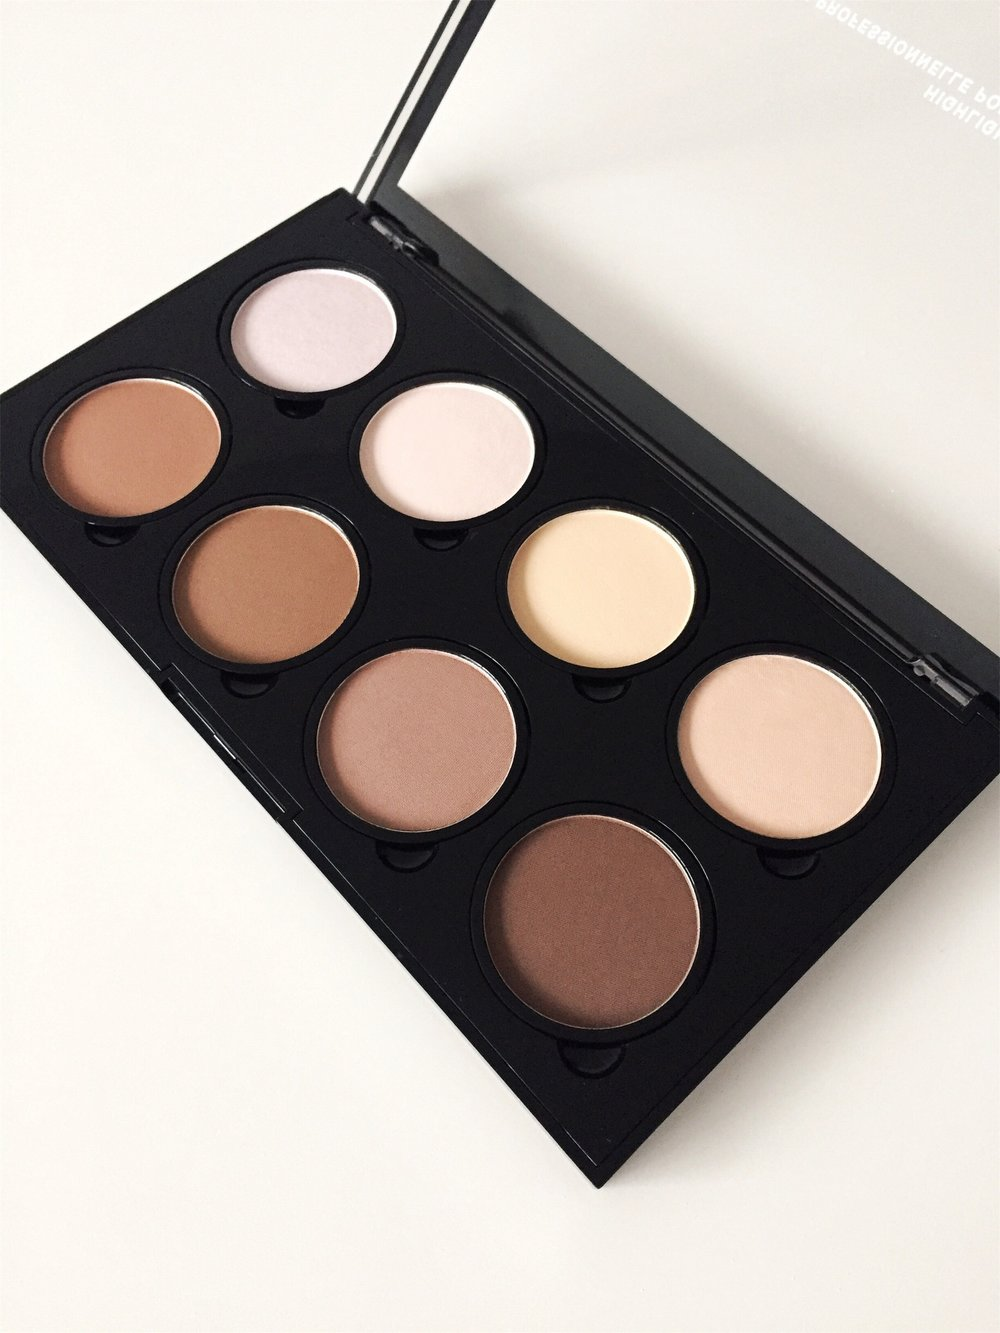 Nyx Highlight and Contour Pro Palette  - Purchase Here